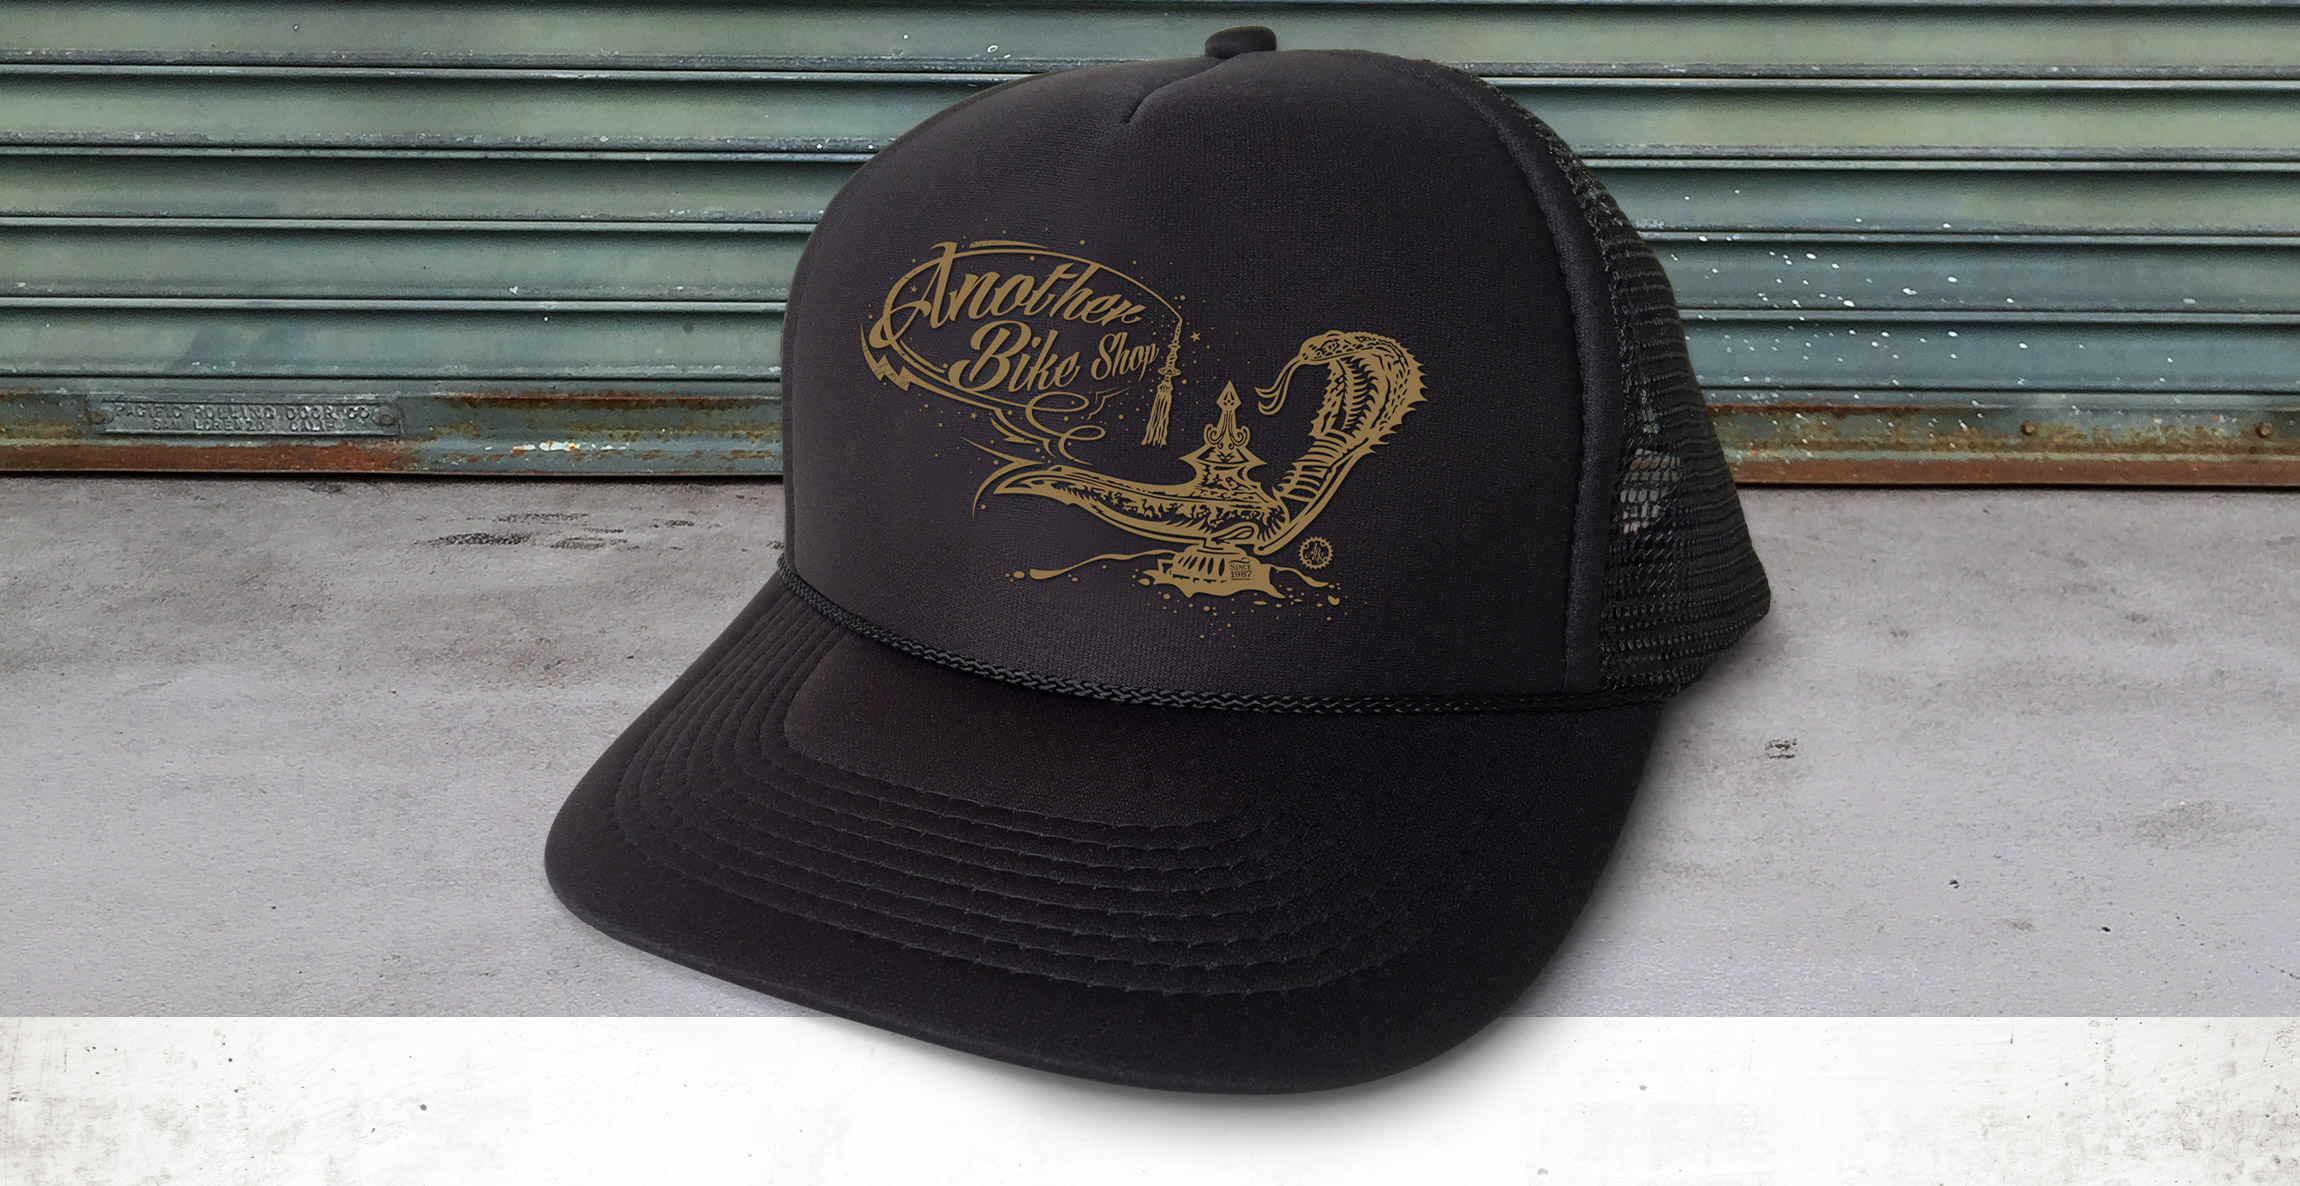 ABS - Another Bike Shop - Magic Carpet genie cobra snake apparel hat design - Graphic Regime